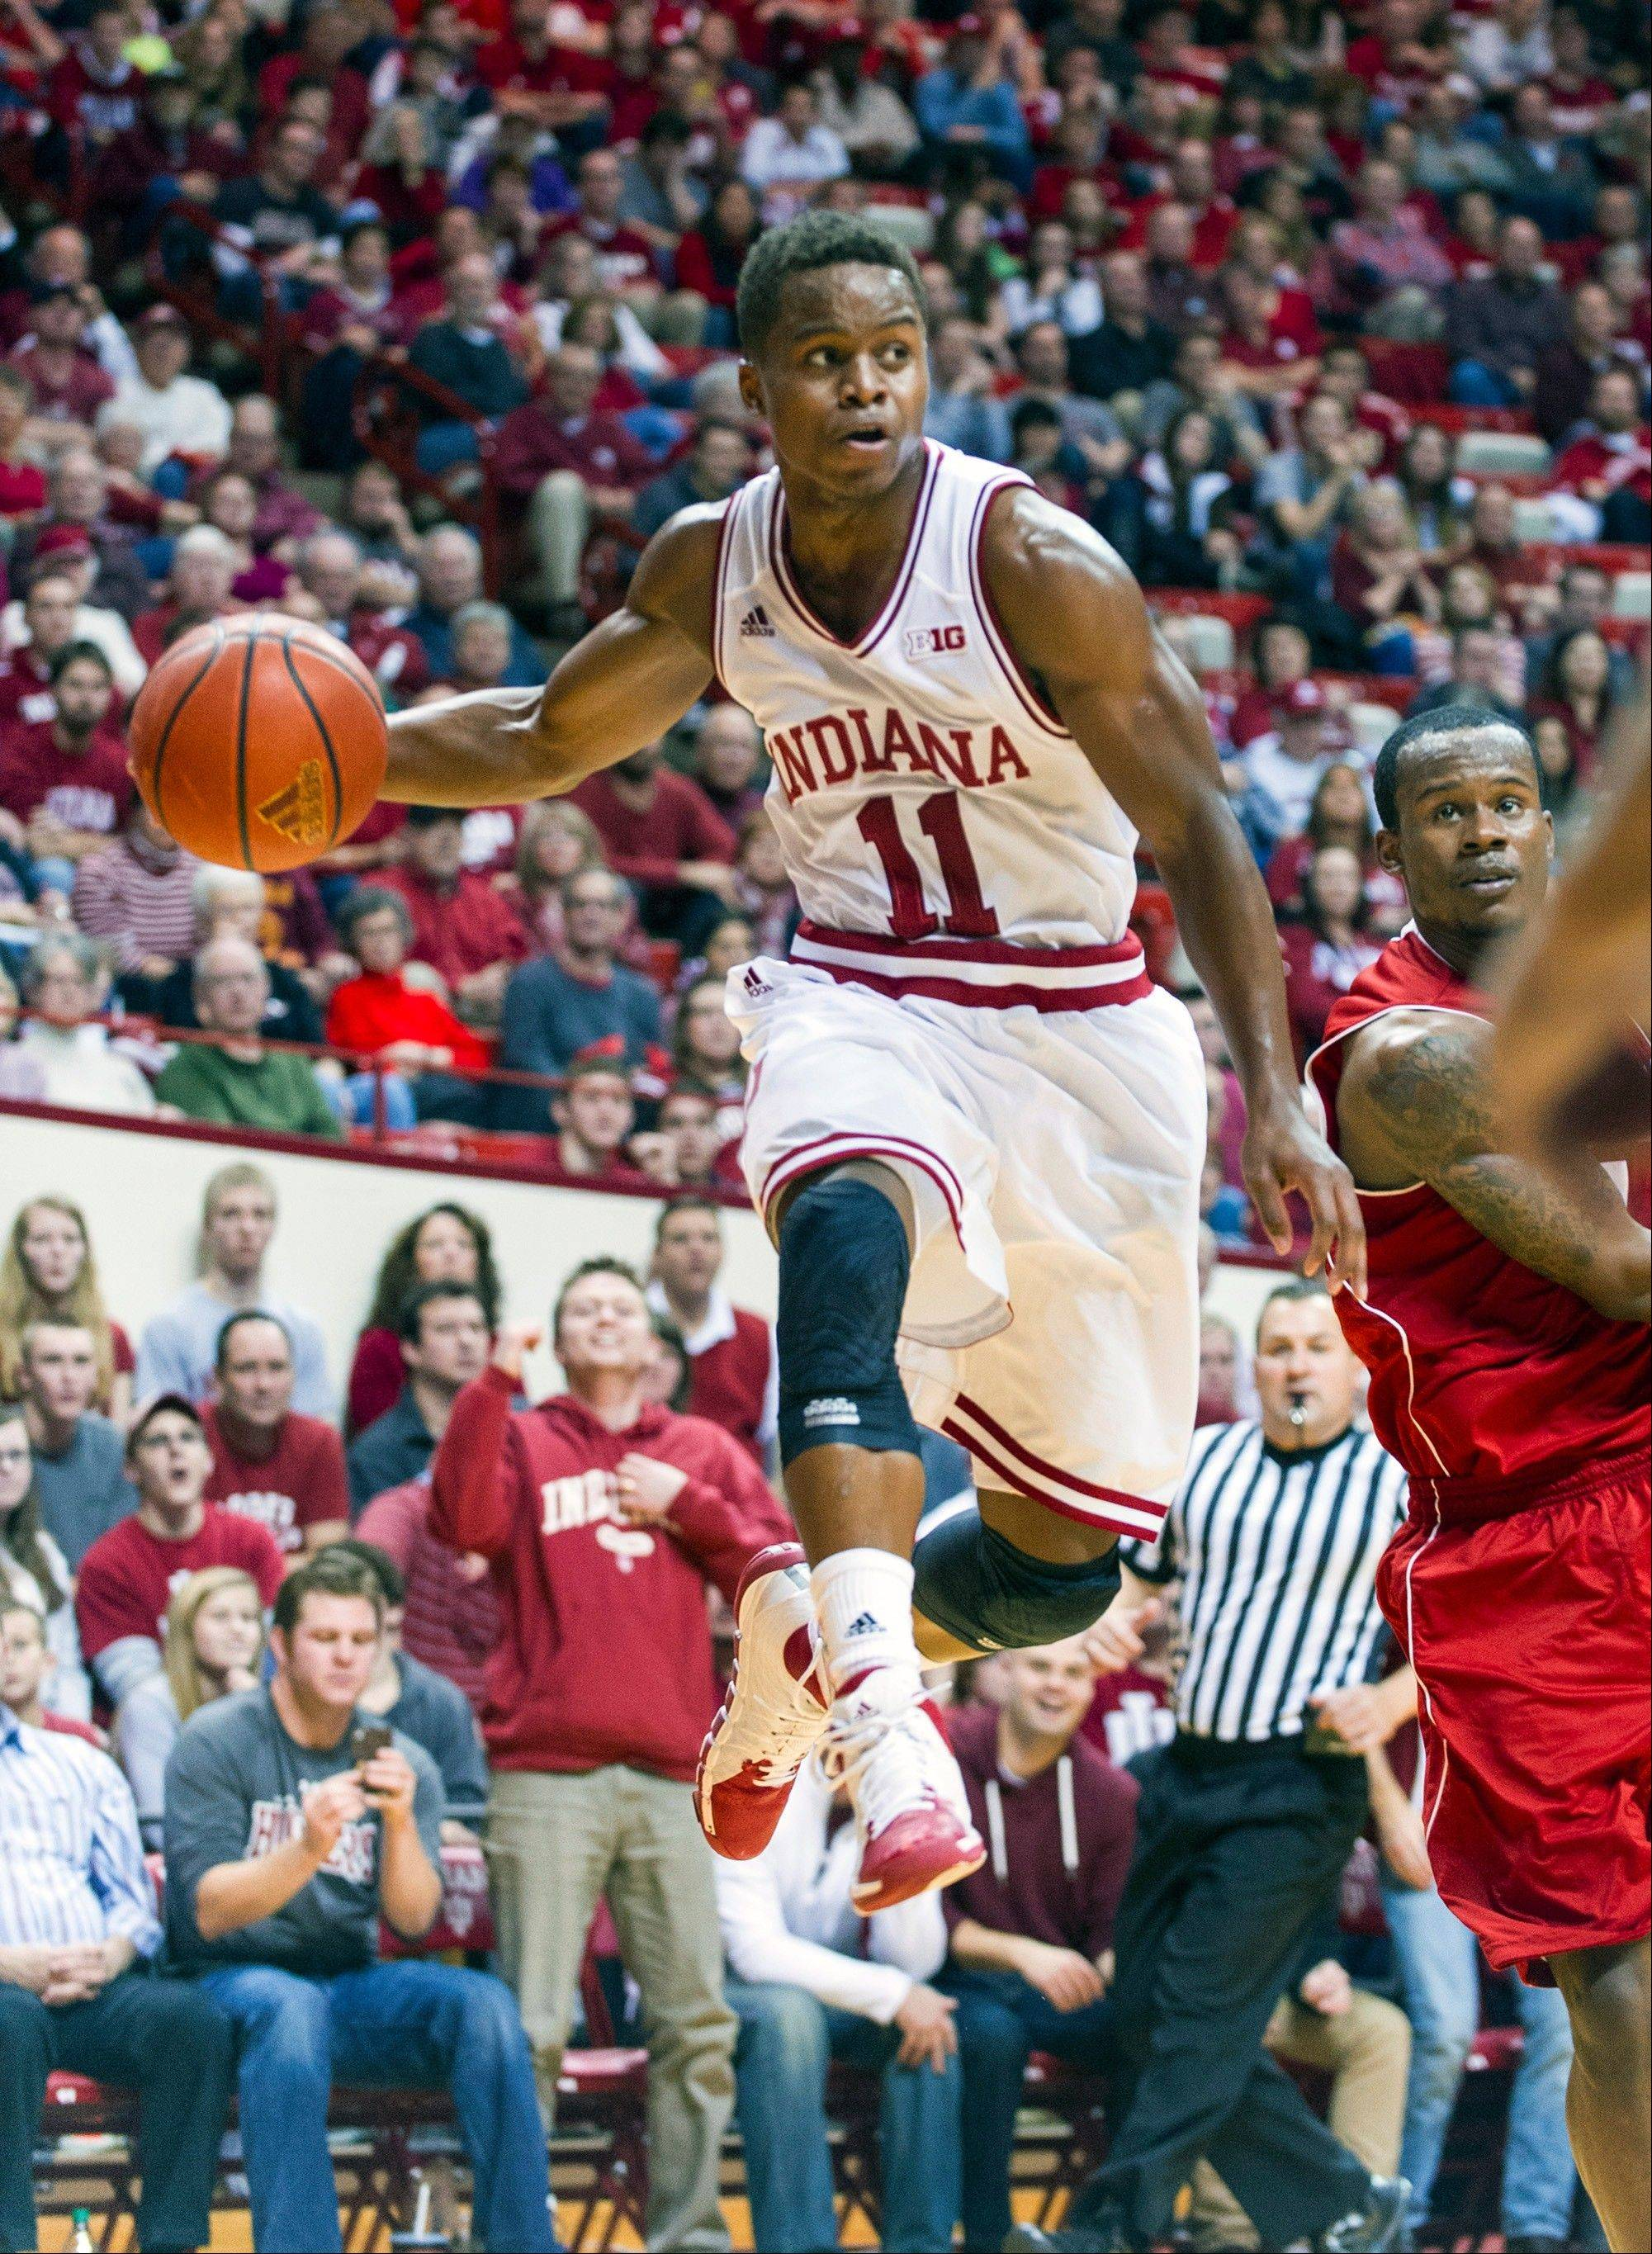 Indiana�s Yogi Ferrell fires off a pass to a teammate during the second half of Friday�s game against Nicholls State in Bloomington, Ind. Indiana won 79-66.